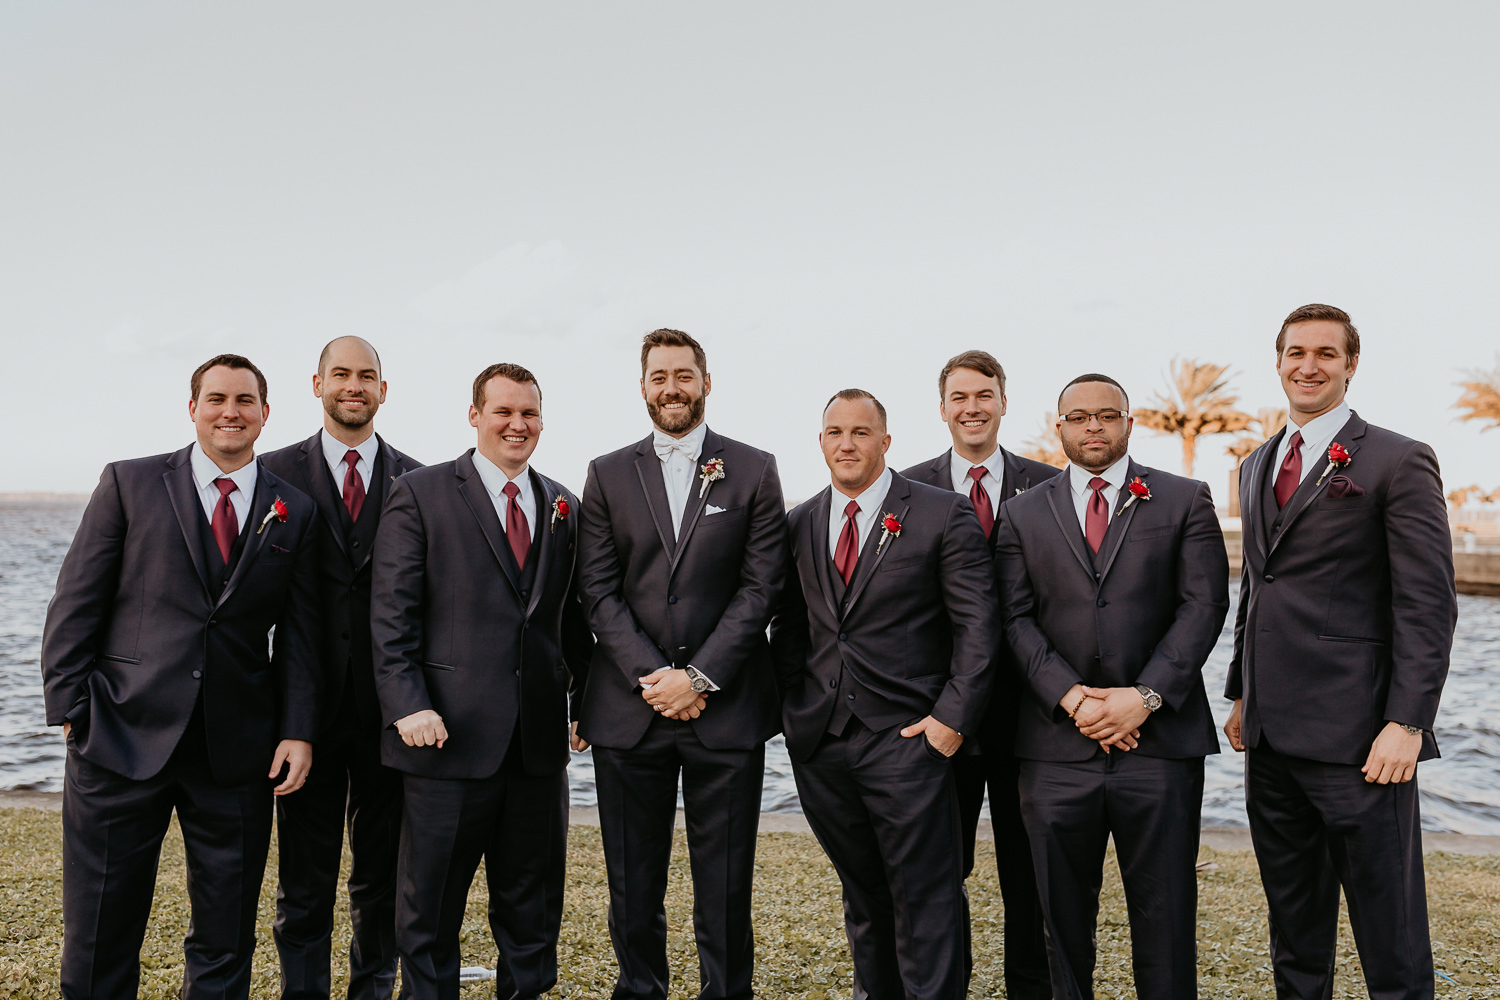 groomsmen lined up smiling at camera with lake in the background